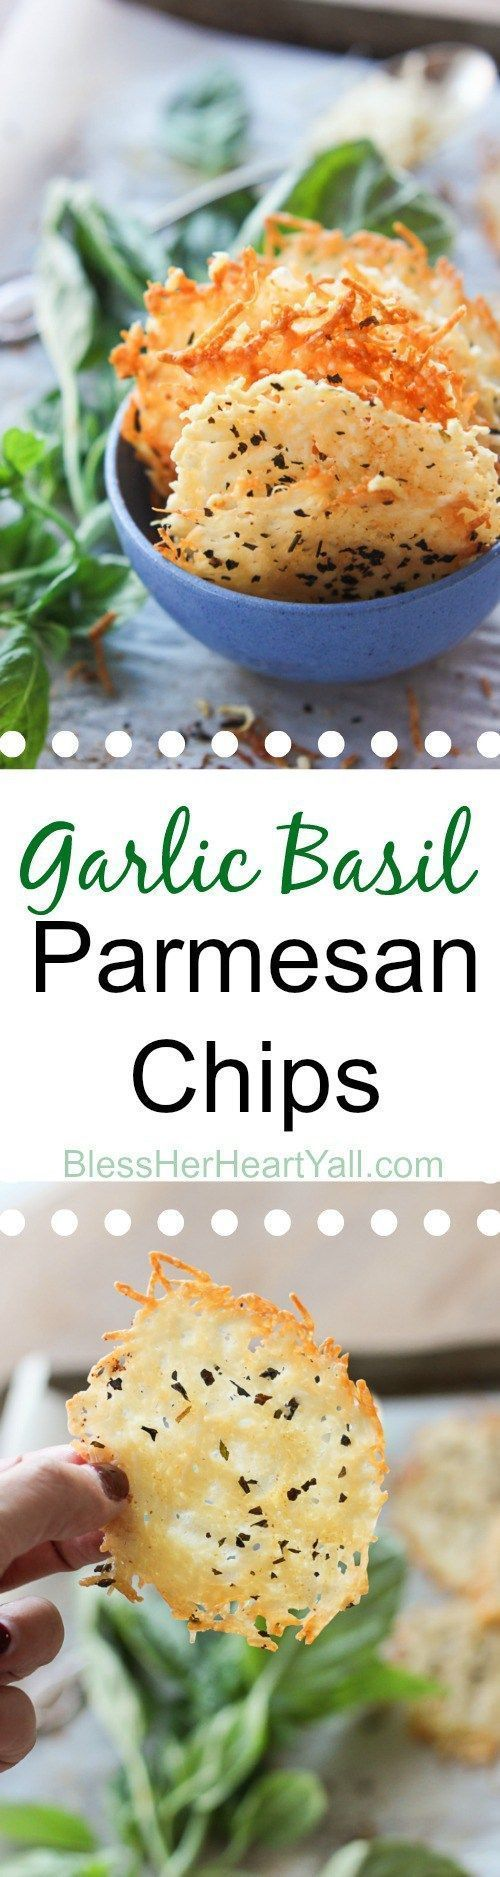 Garlic basil parmesan crisps are an easy 3 ingredient baked recipe! These crispy cheesy dippers are the perfect appetizer or snack for any gluten-free or low carb eaters and are huge hits at parties! All you need is parmesan, basil, garlic powder and 5 mi